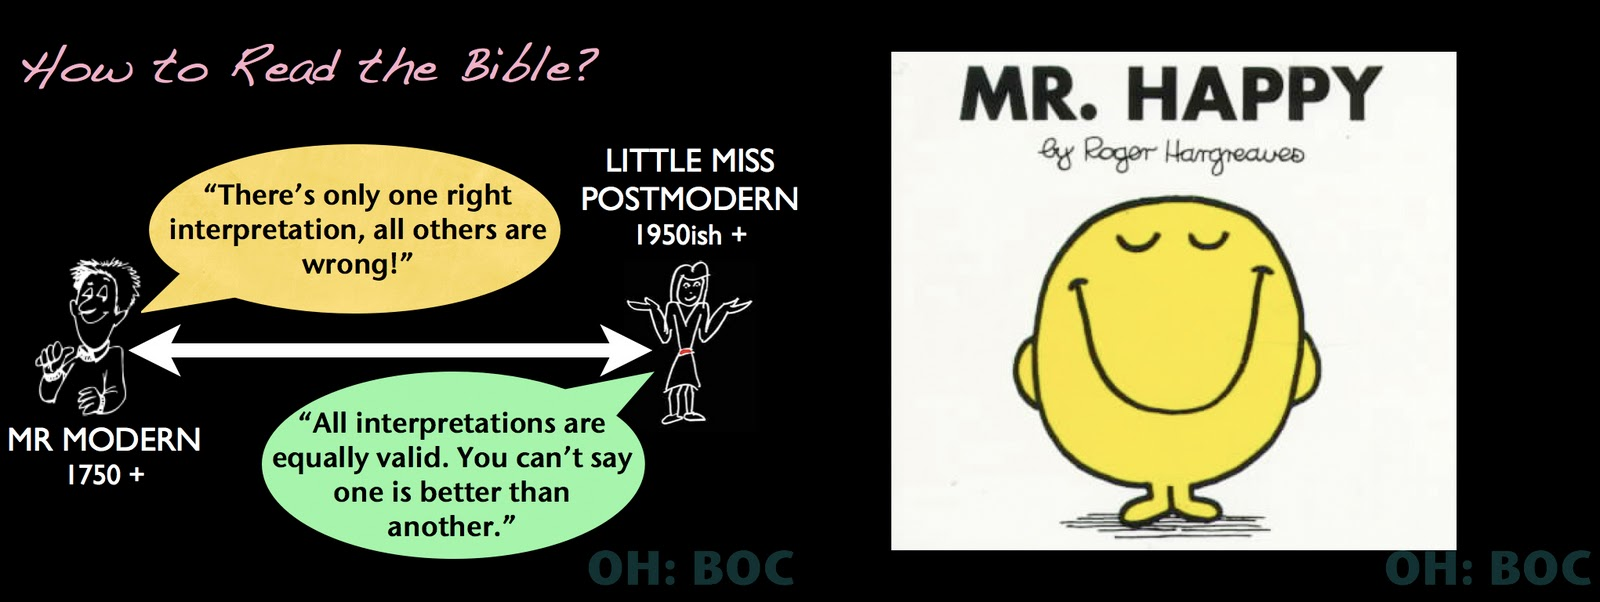 modernism vs postmodernism architecture essay